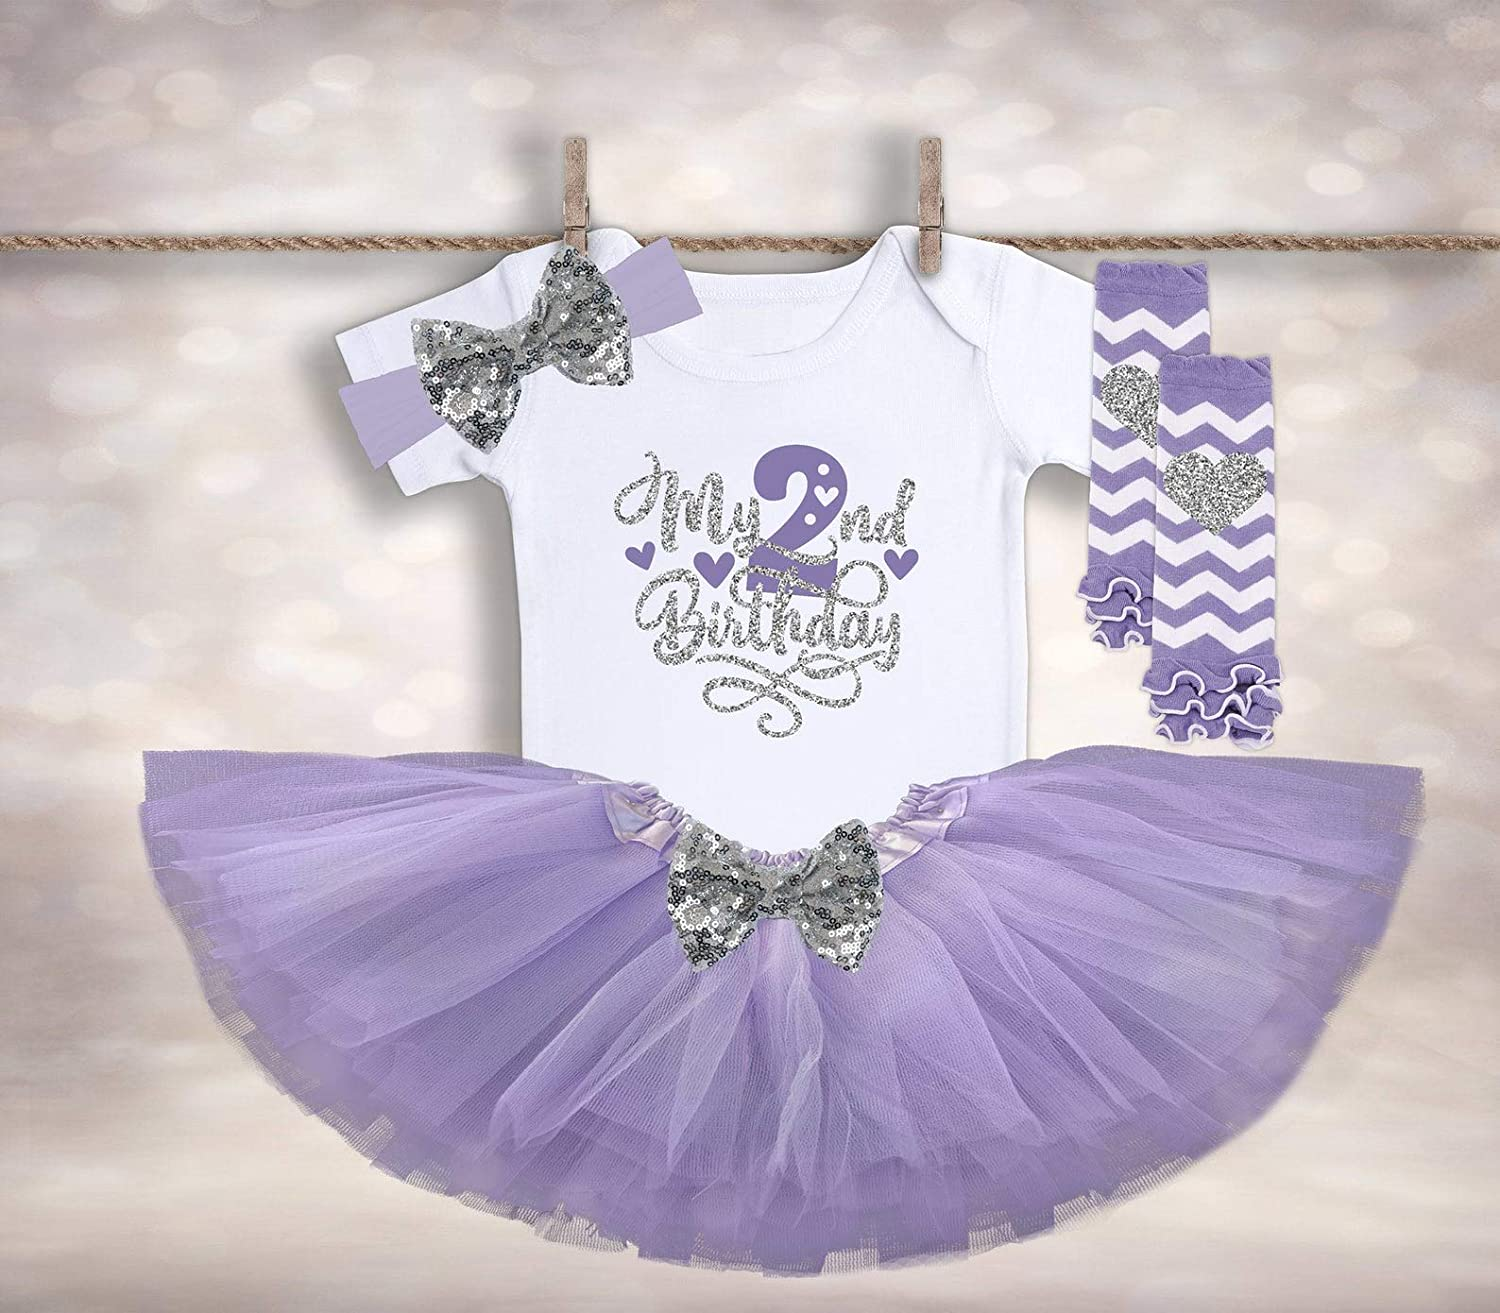 2nd Second 2 birthday Shirt  Personalized  2 Pc Tutu outfit PINK Fast shipping Baby Shark Birthday Dress +NAME+